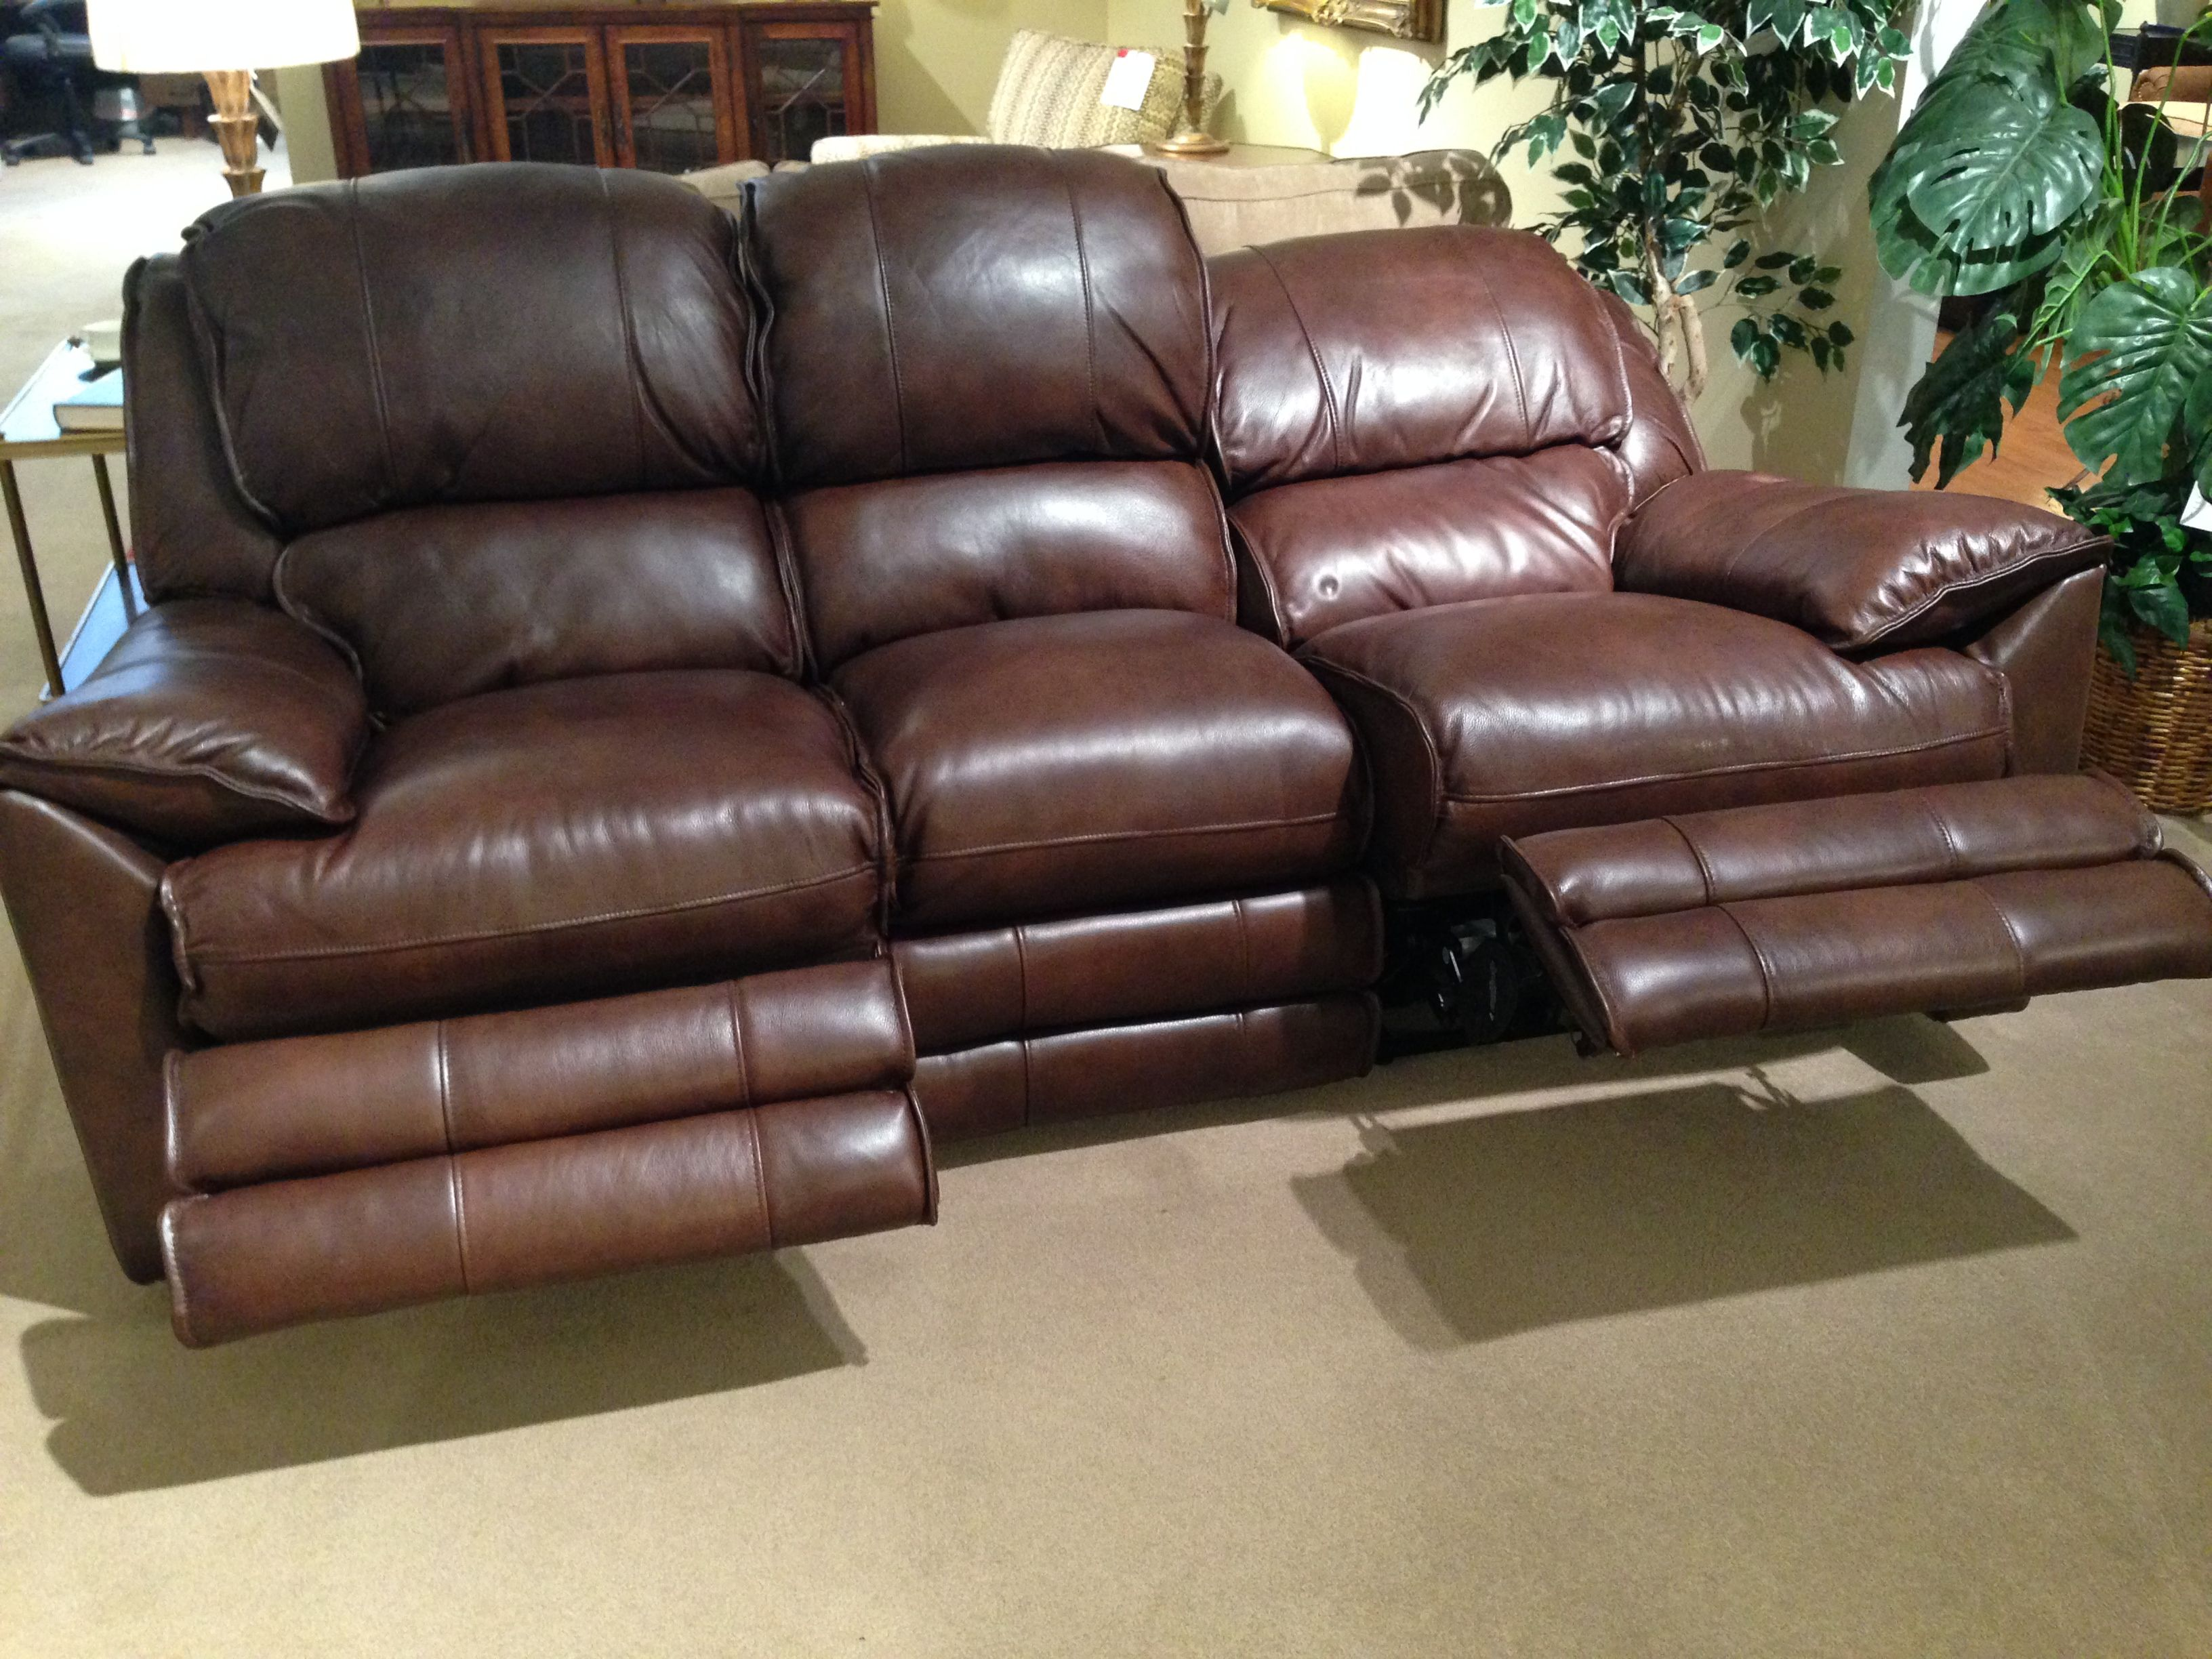 Leather Recliner Sofa Red Color Furniture Pinterest